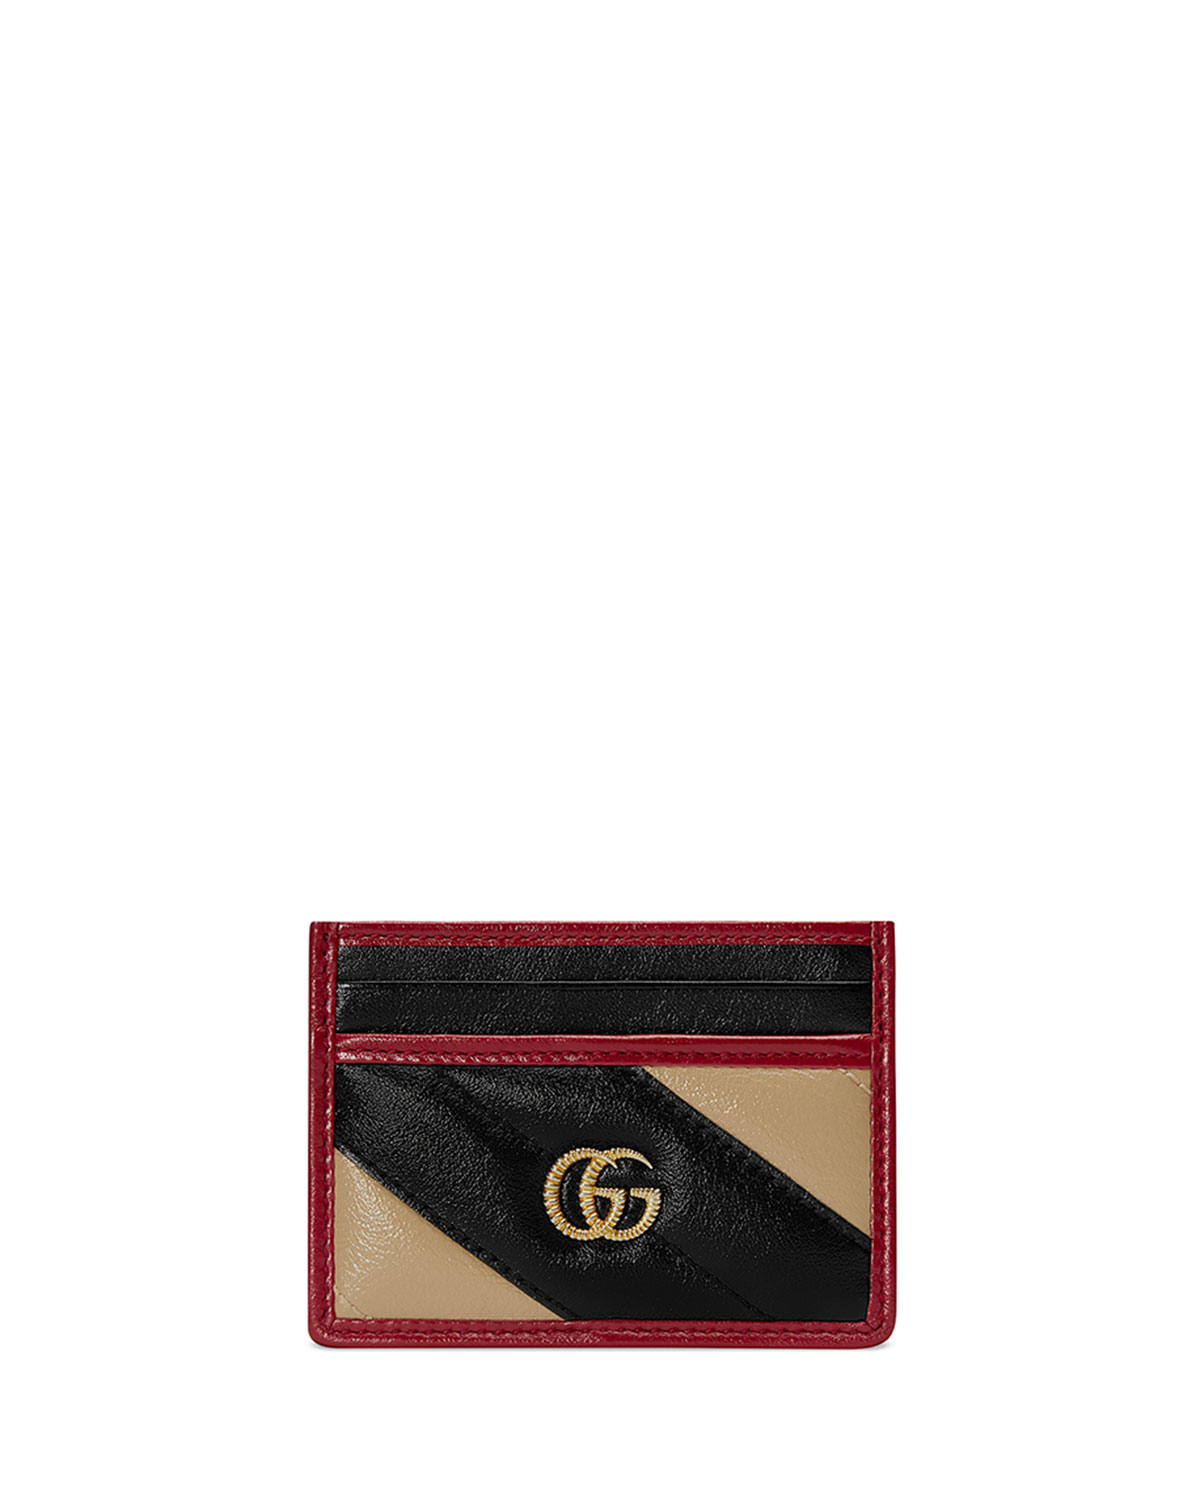 Gucci Bags GG MARMONT TORCHON CARD CASE